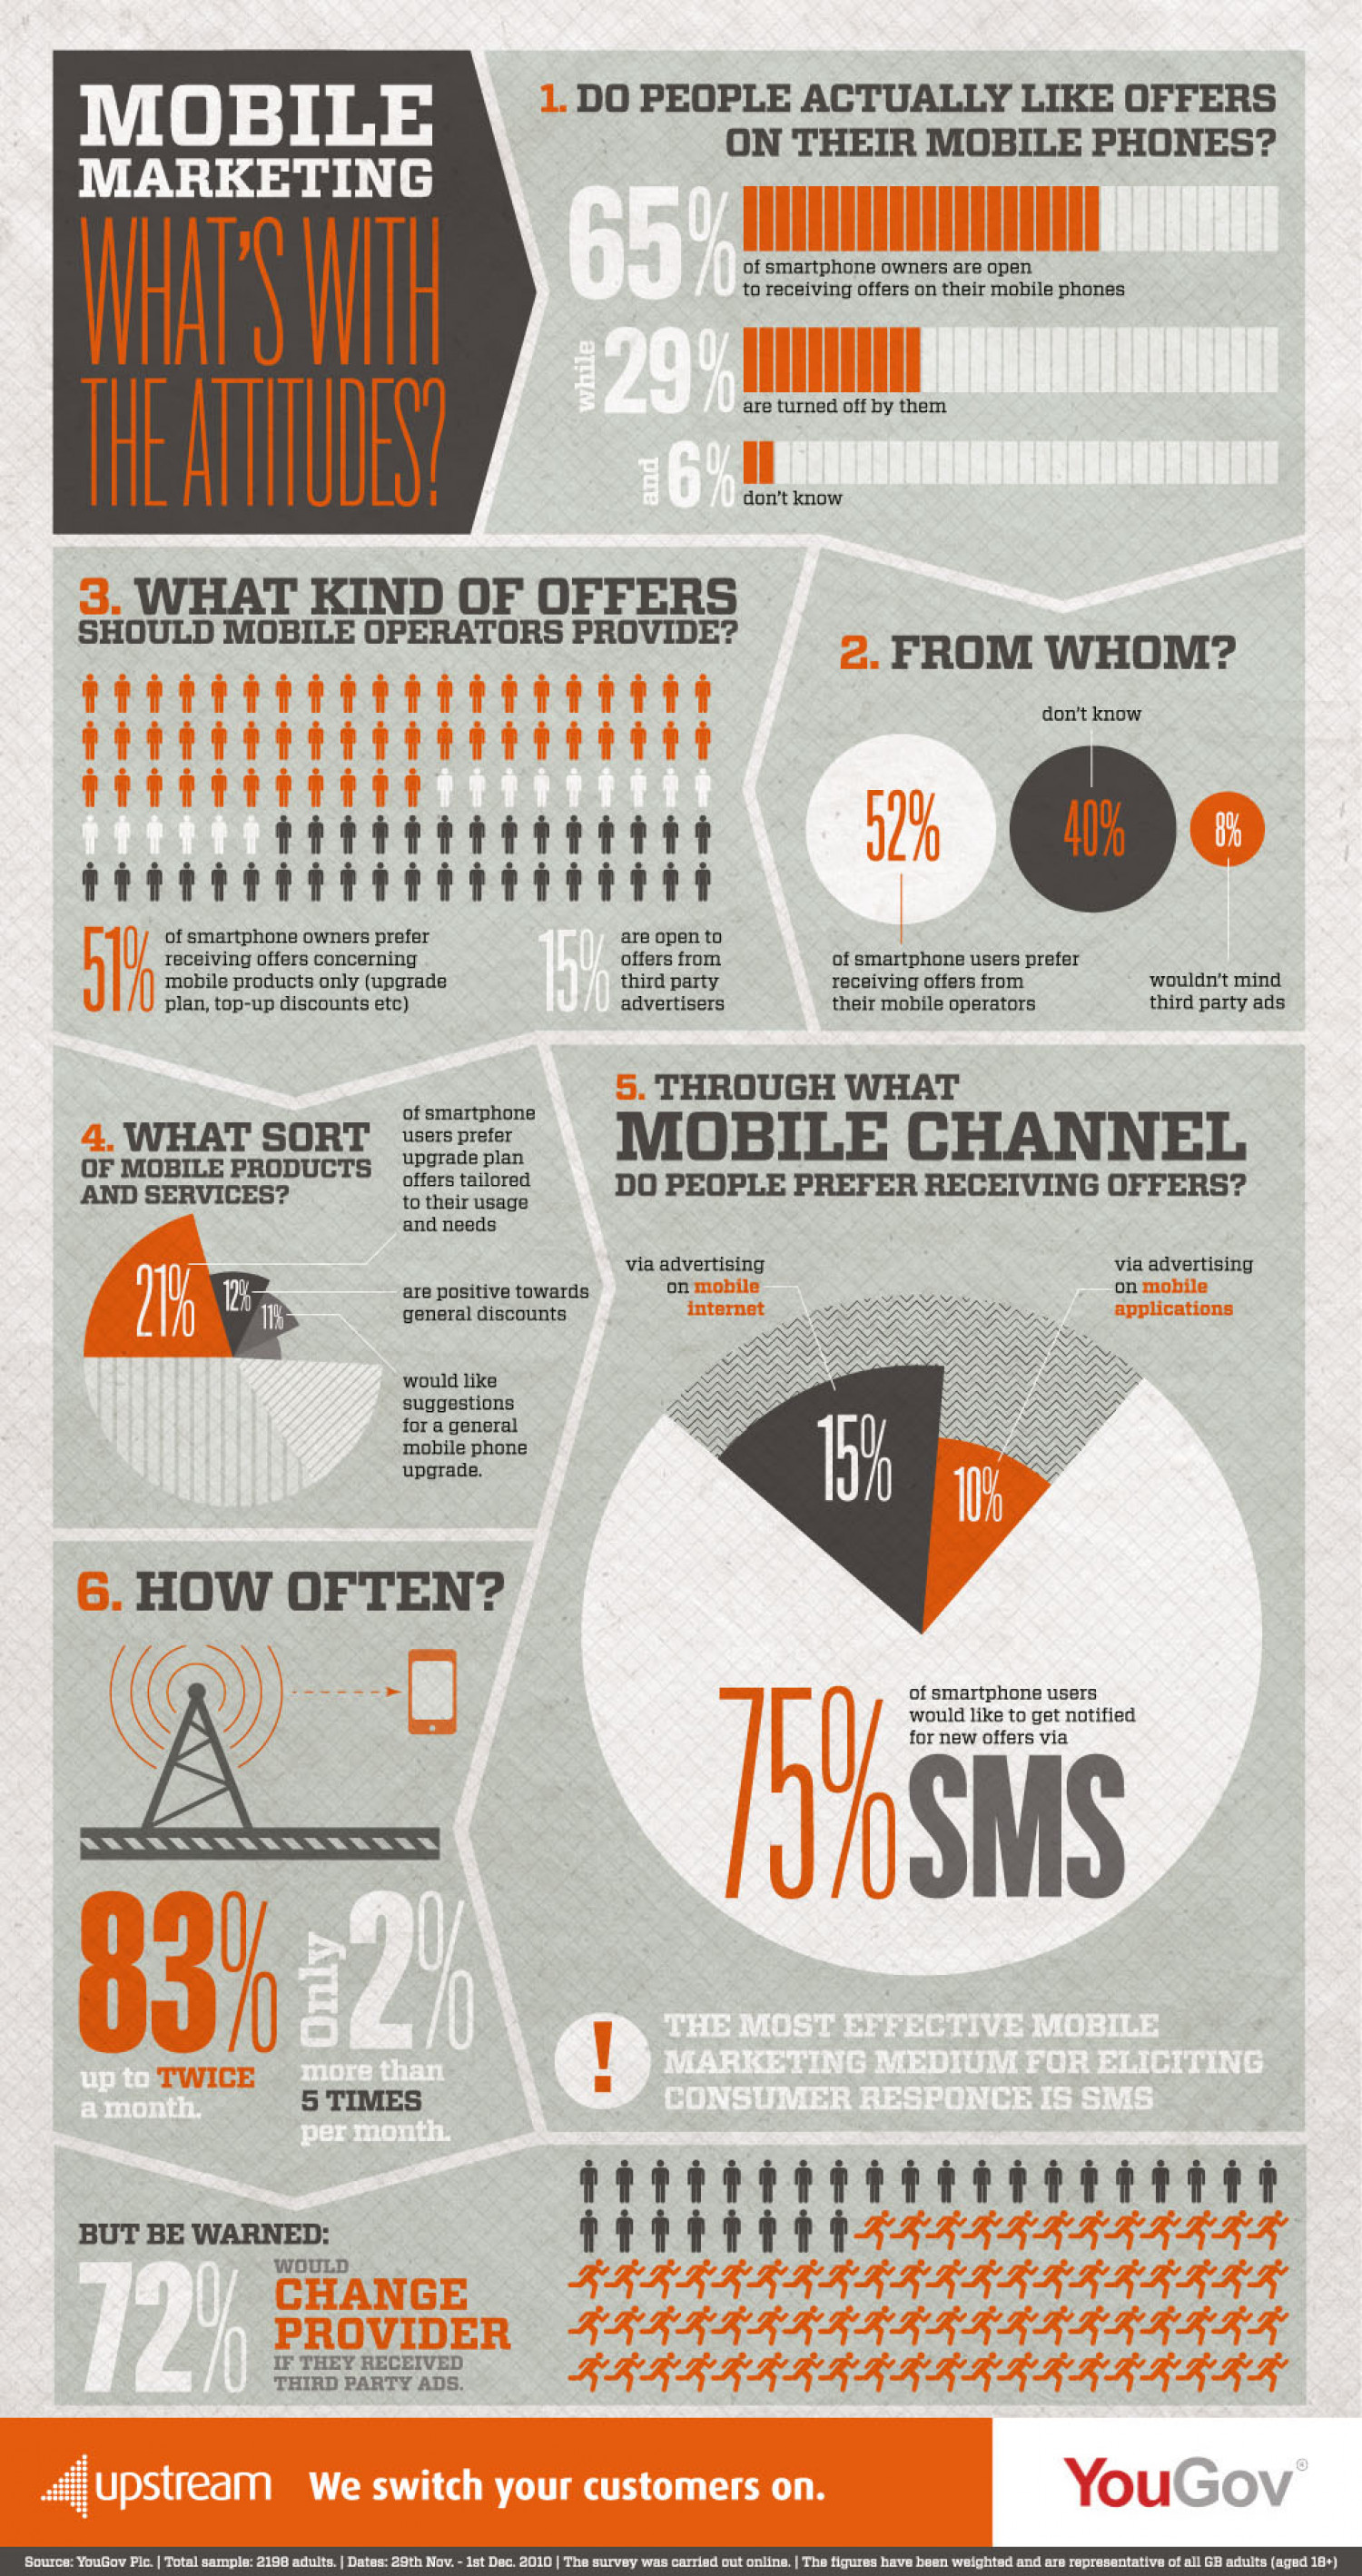 Mobile Marketing: What